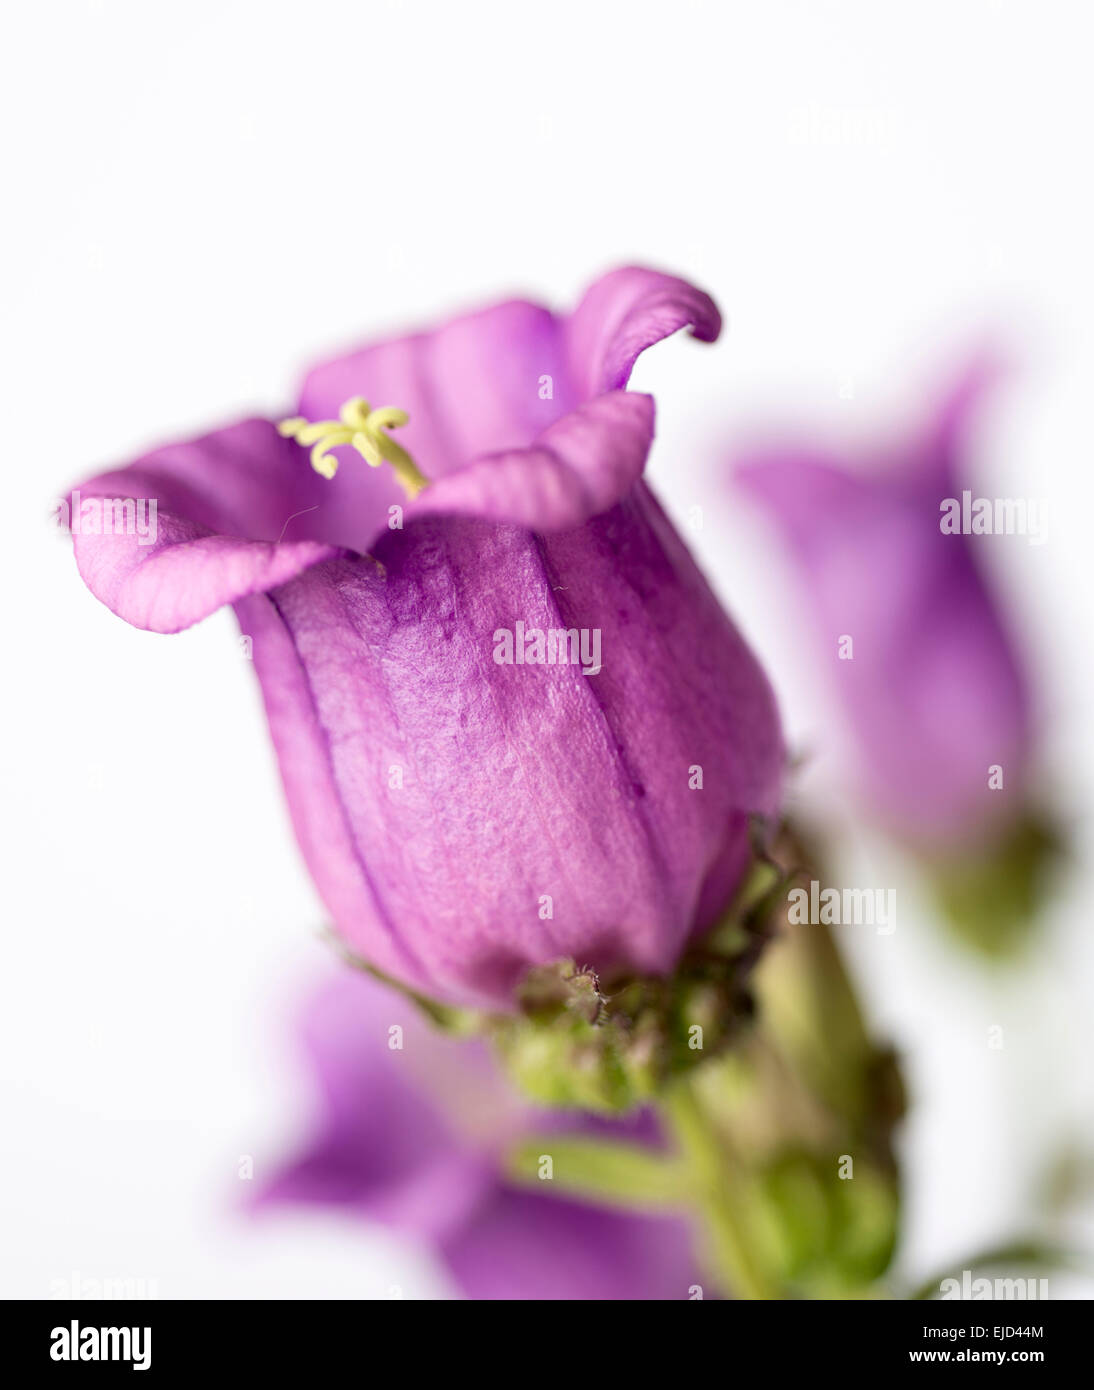 Annual flower Campanula, known as Bellflower or Canterbury Bells - Stock Image